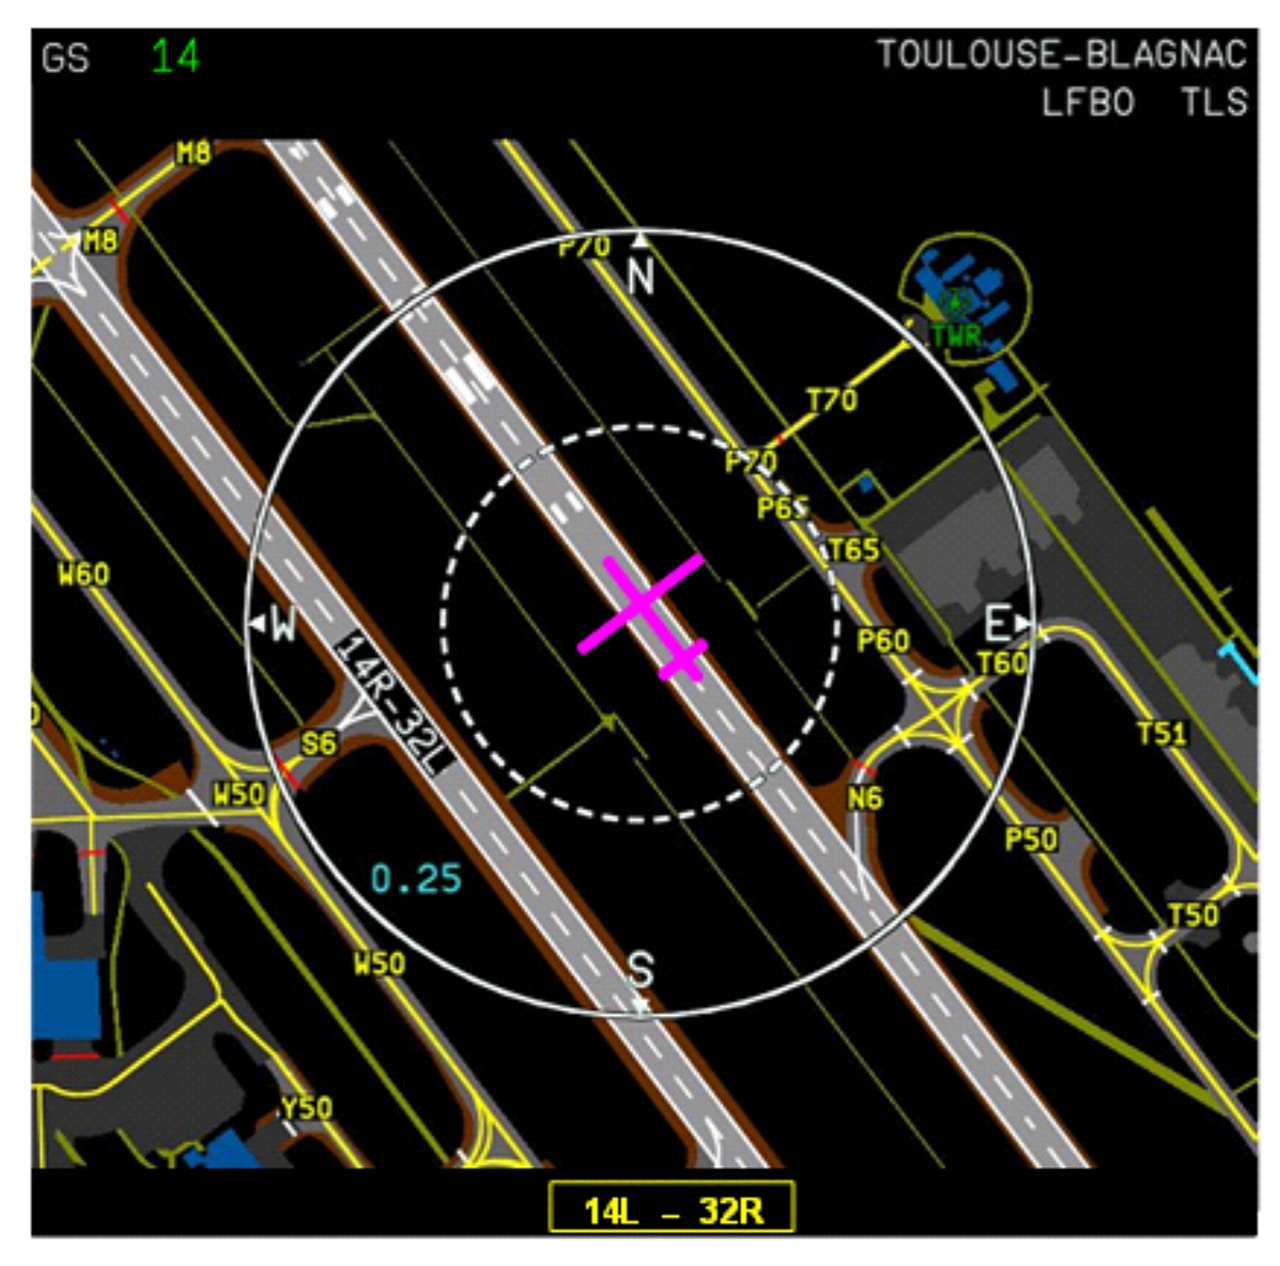 The 'On-board Airport Navigation System' (OANS) - which was introduced on the A350 and is now available on the A330neo - presents the pilot with a map of the airport apron, its runways and all the taxiways, showing the aircraft's exact location in real-time.